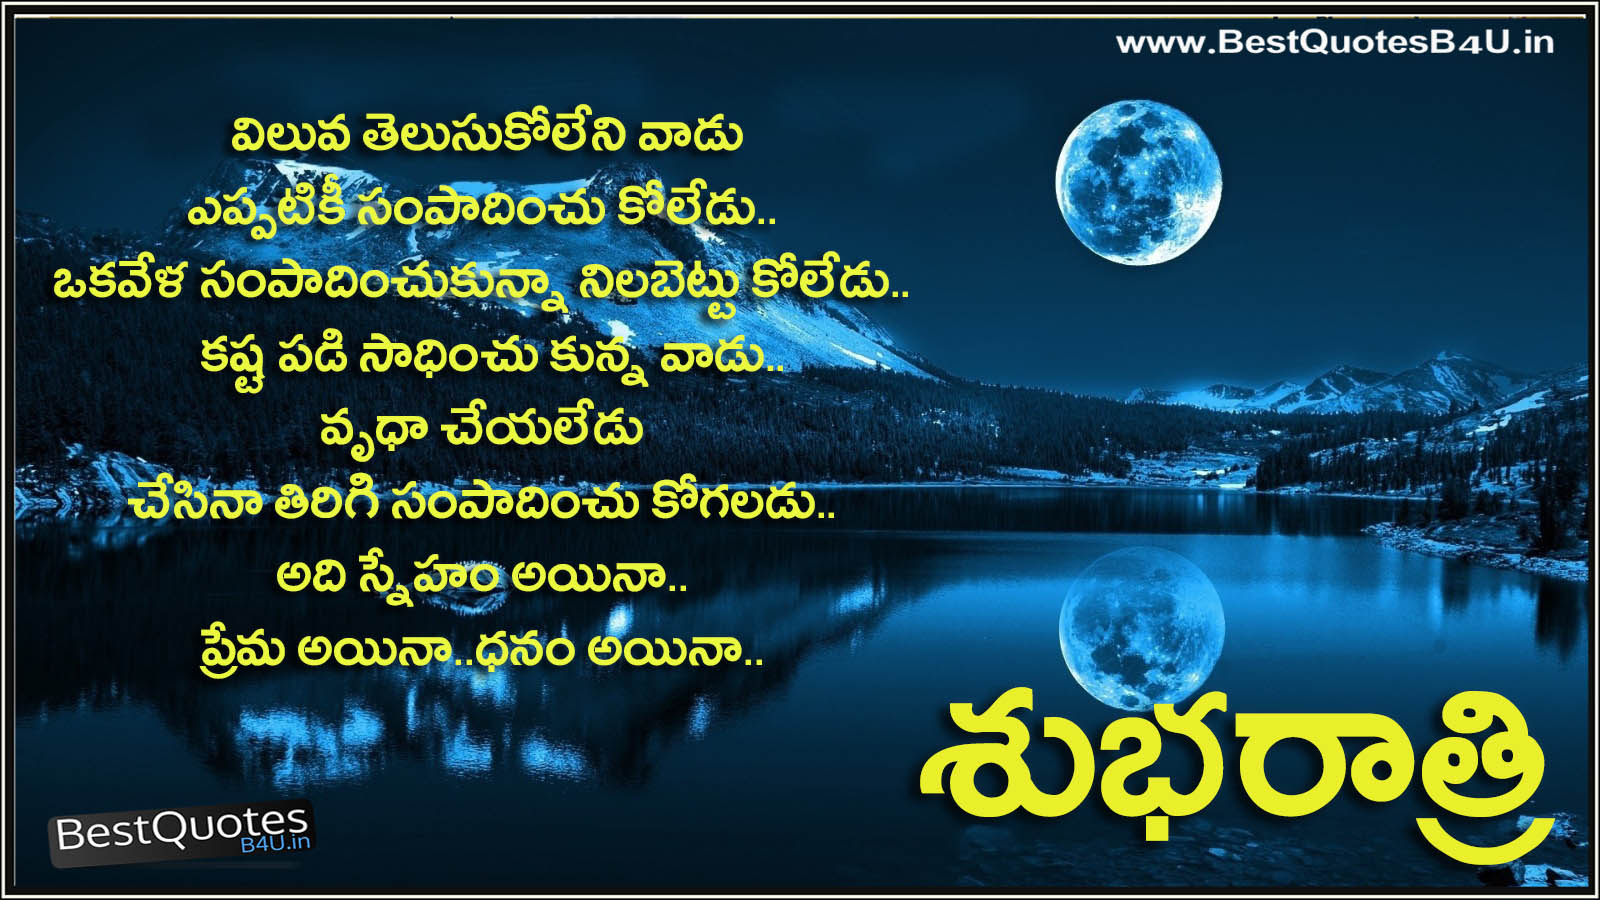 Gud Night Wallpapers With Quotes Good Night Telugu Quotes With Nice Wallpapers Like Share